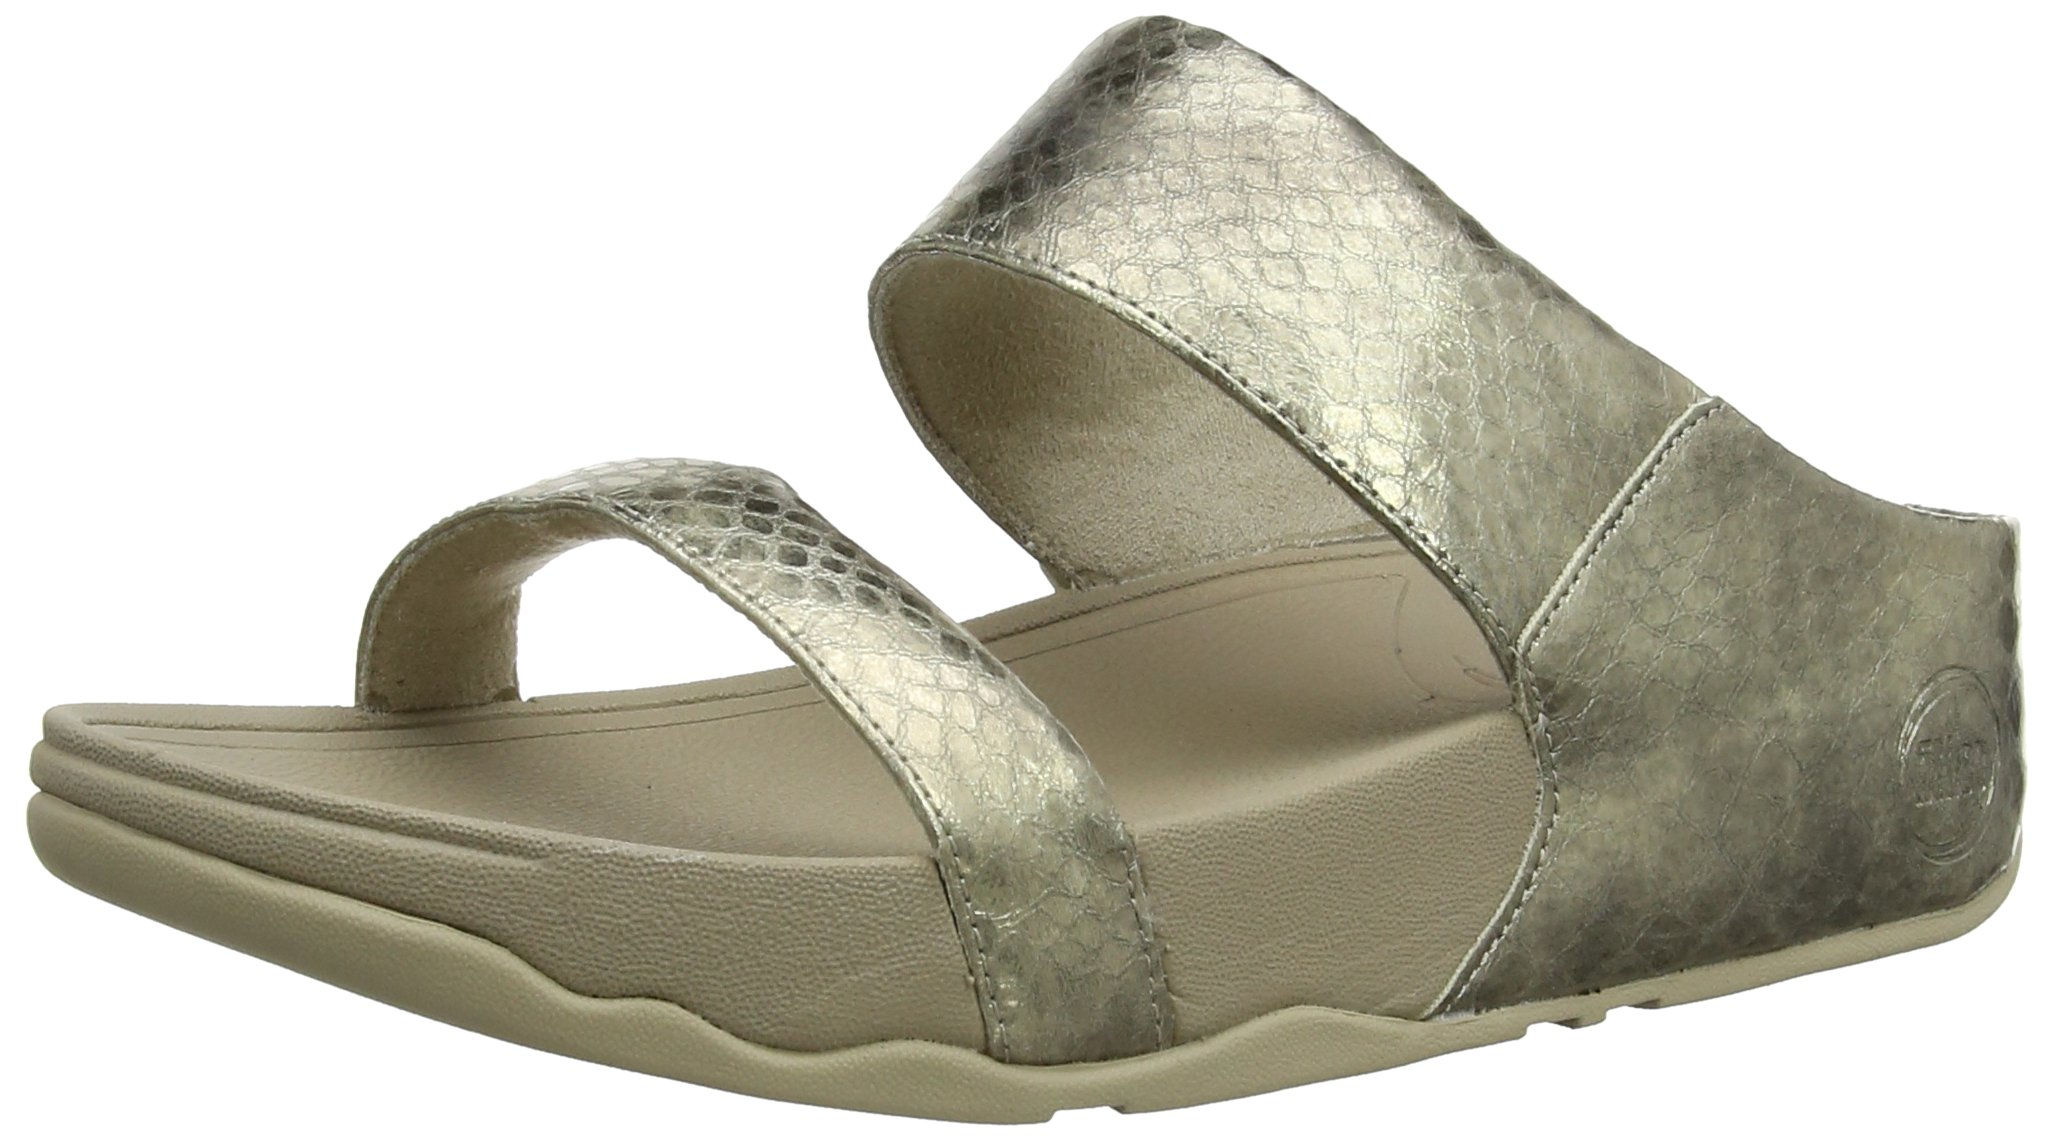 FitFlop Women's Lulu Metallic Snake Slide Dress Sandal, Pale Gold, 9 M US